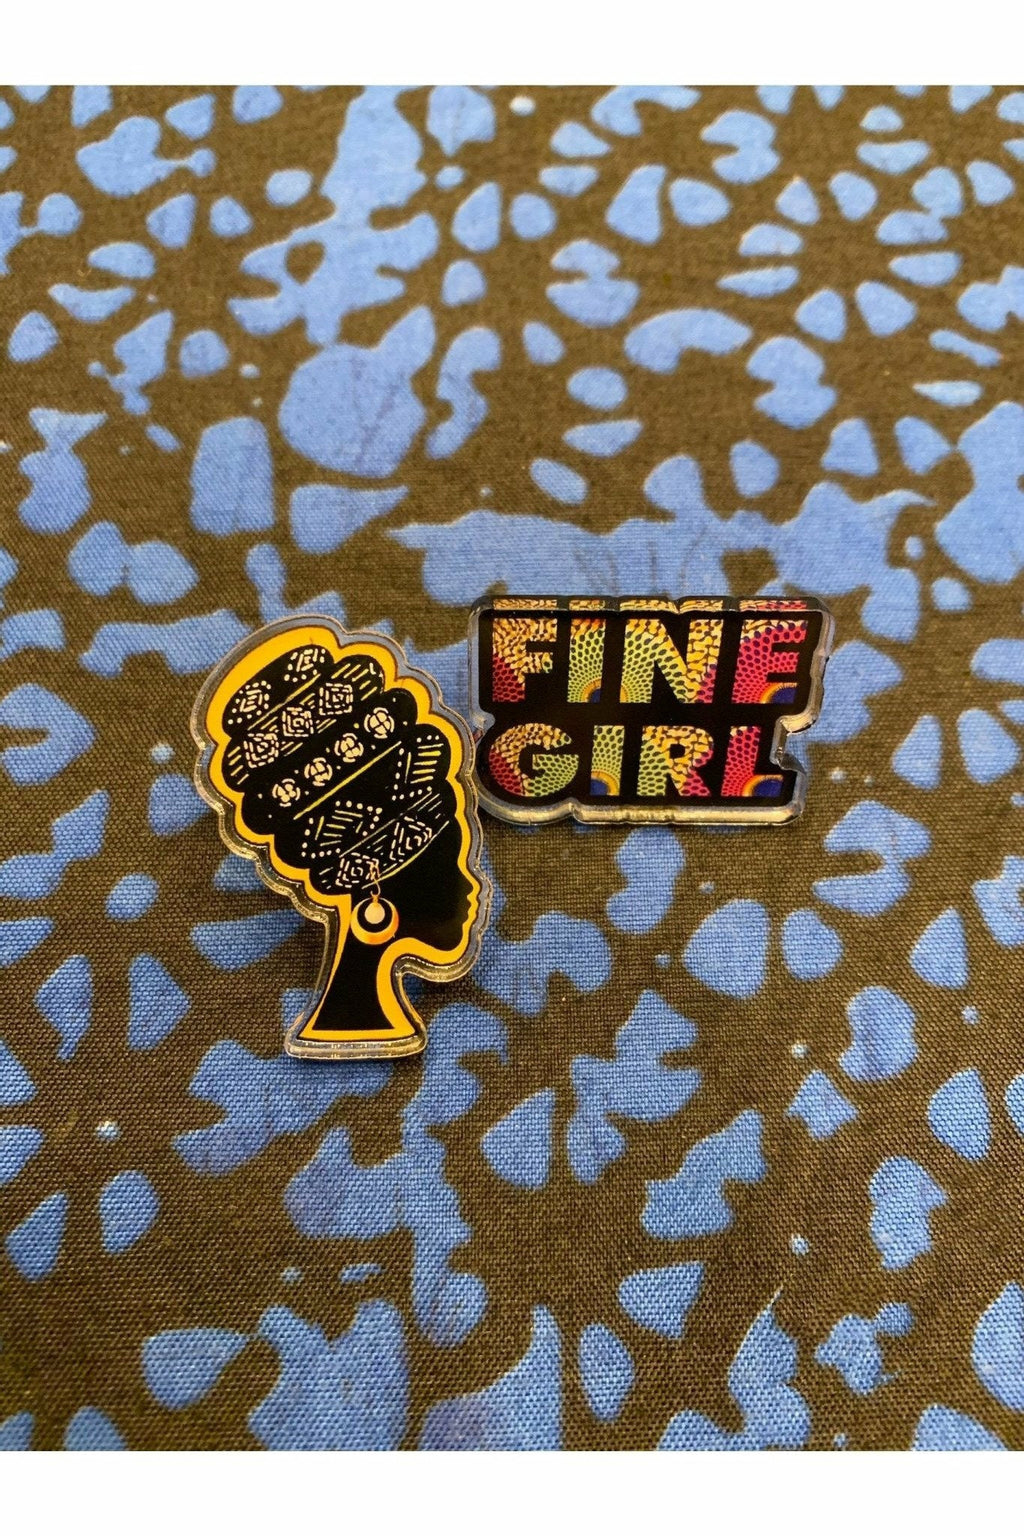 FINE GIRL Pin - Mission Lane Ankara print Pins